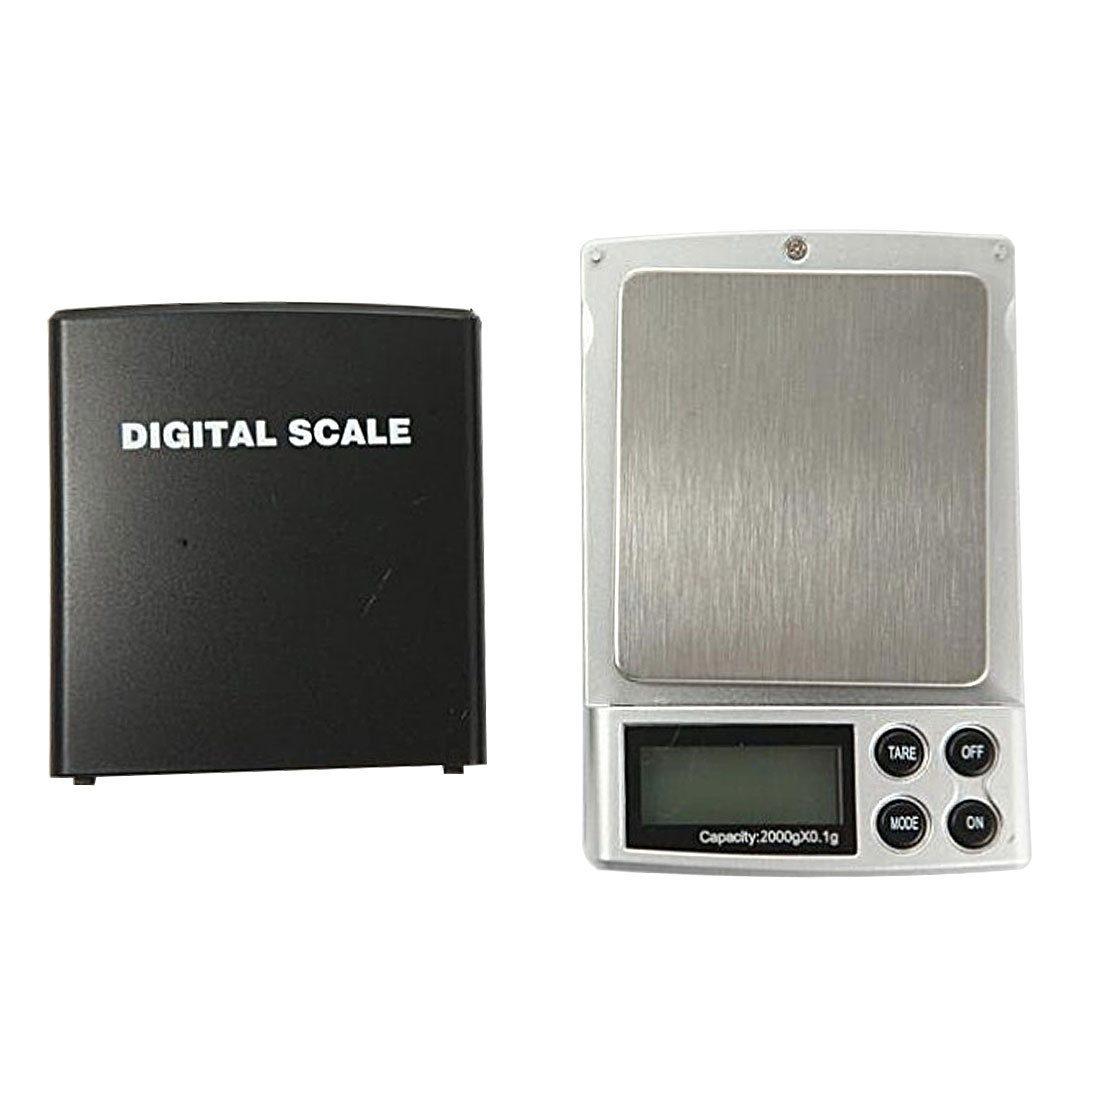 Pocket Electronic Digital Jewelry Scale 2000gx0.1g  Weighing Kitchen Scales Grams Balance LCD Display